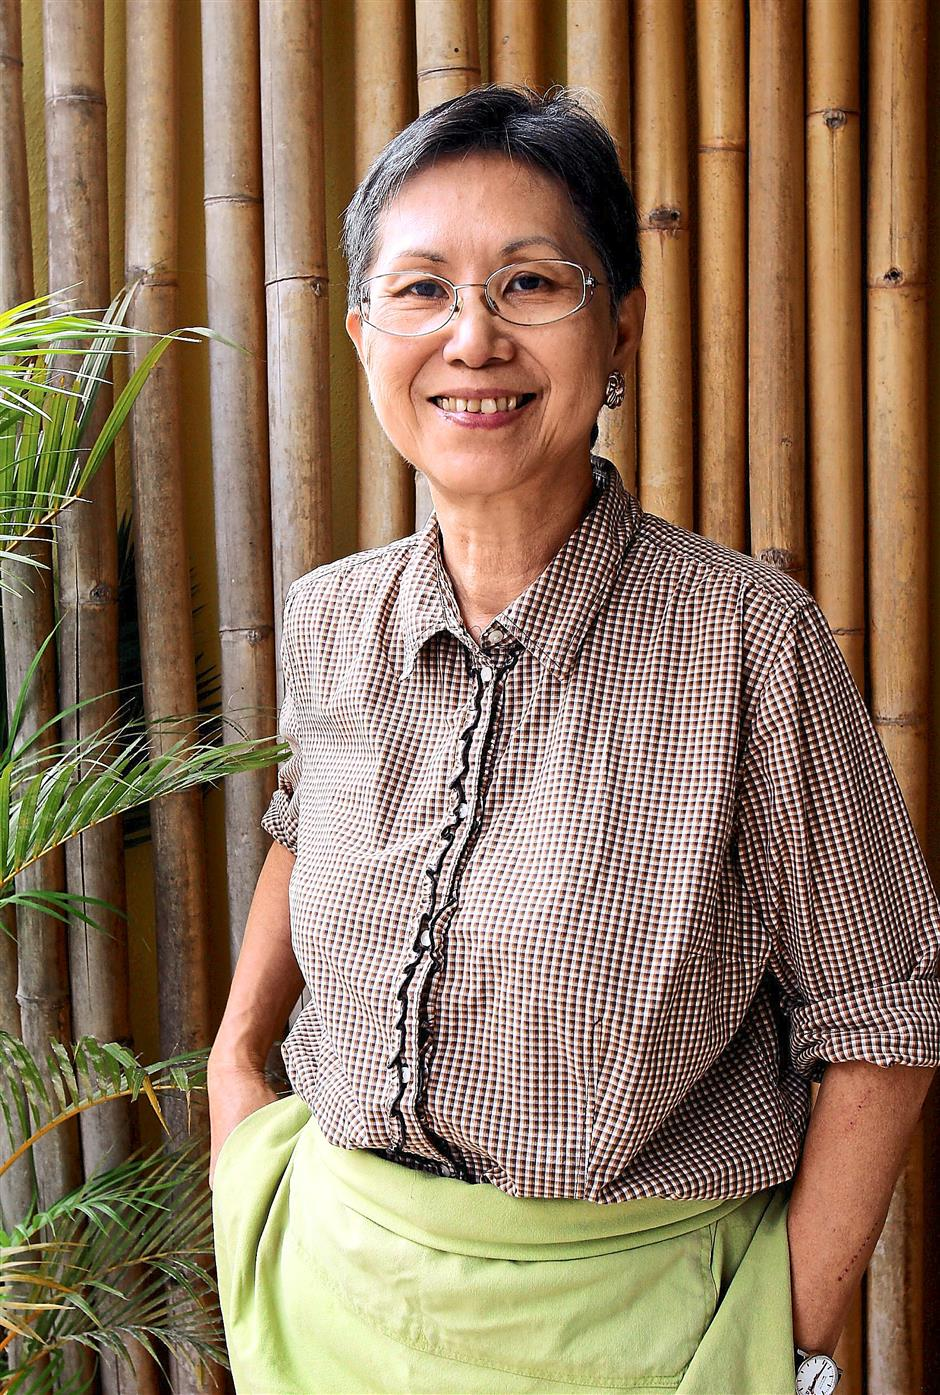 Woods Macrobiotics founder June Ka Lim claims to helping many people regain their health with pure food.